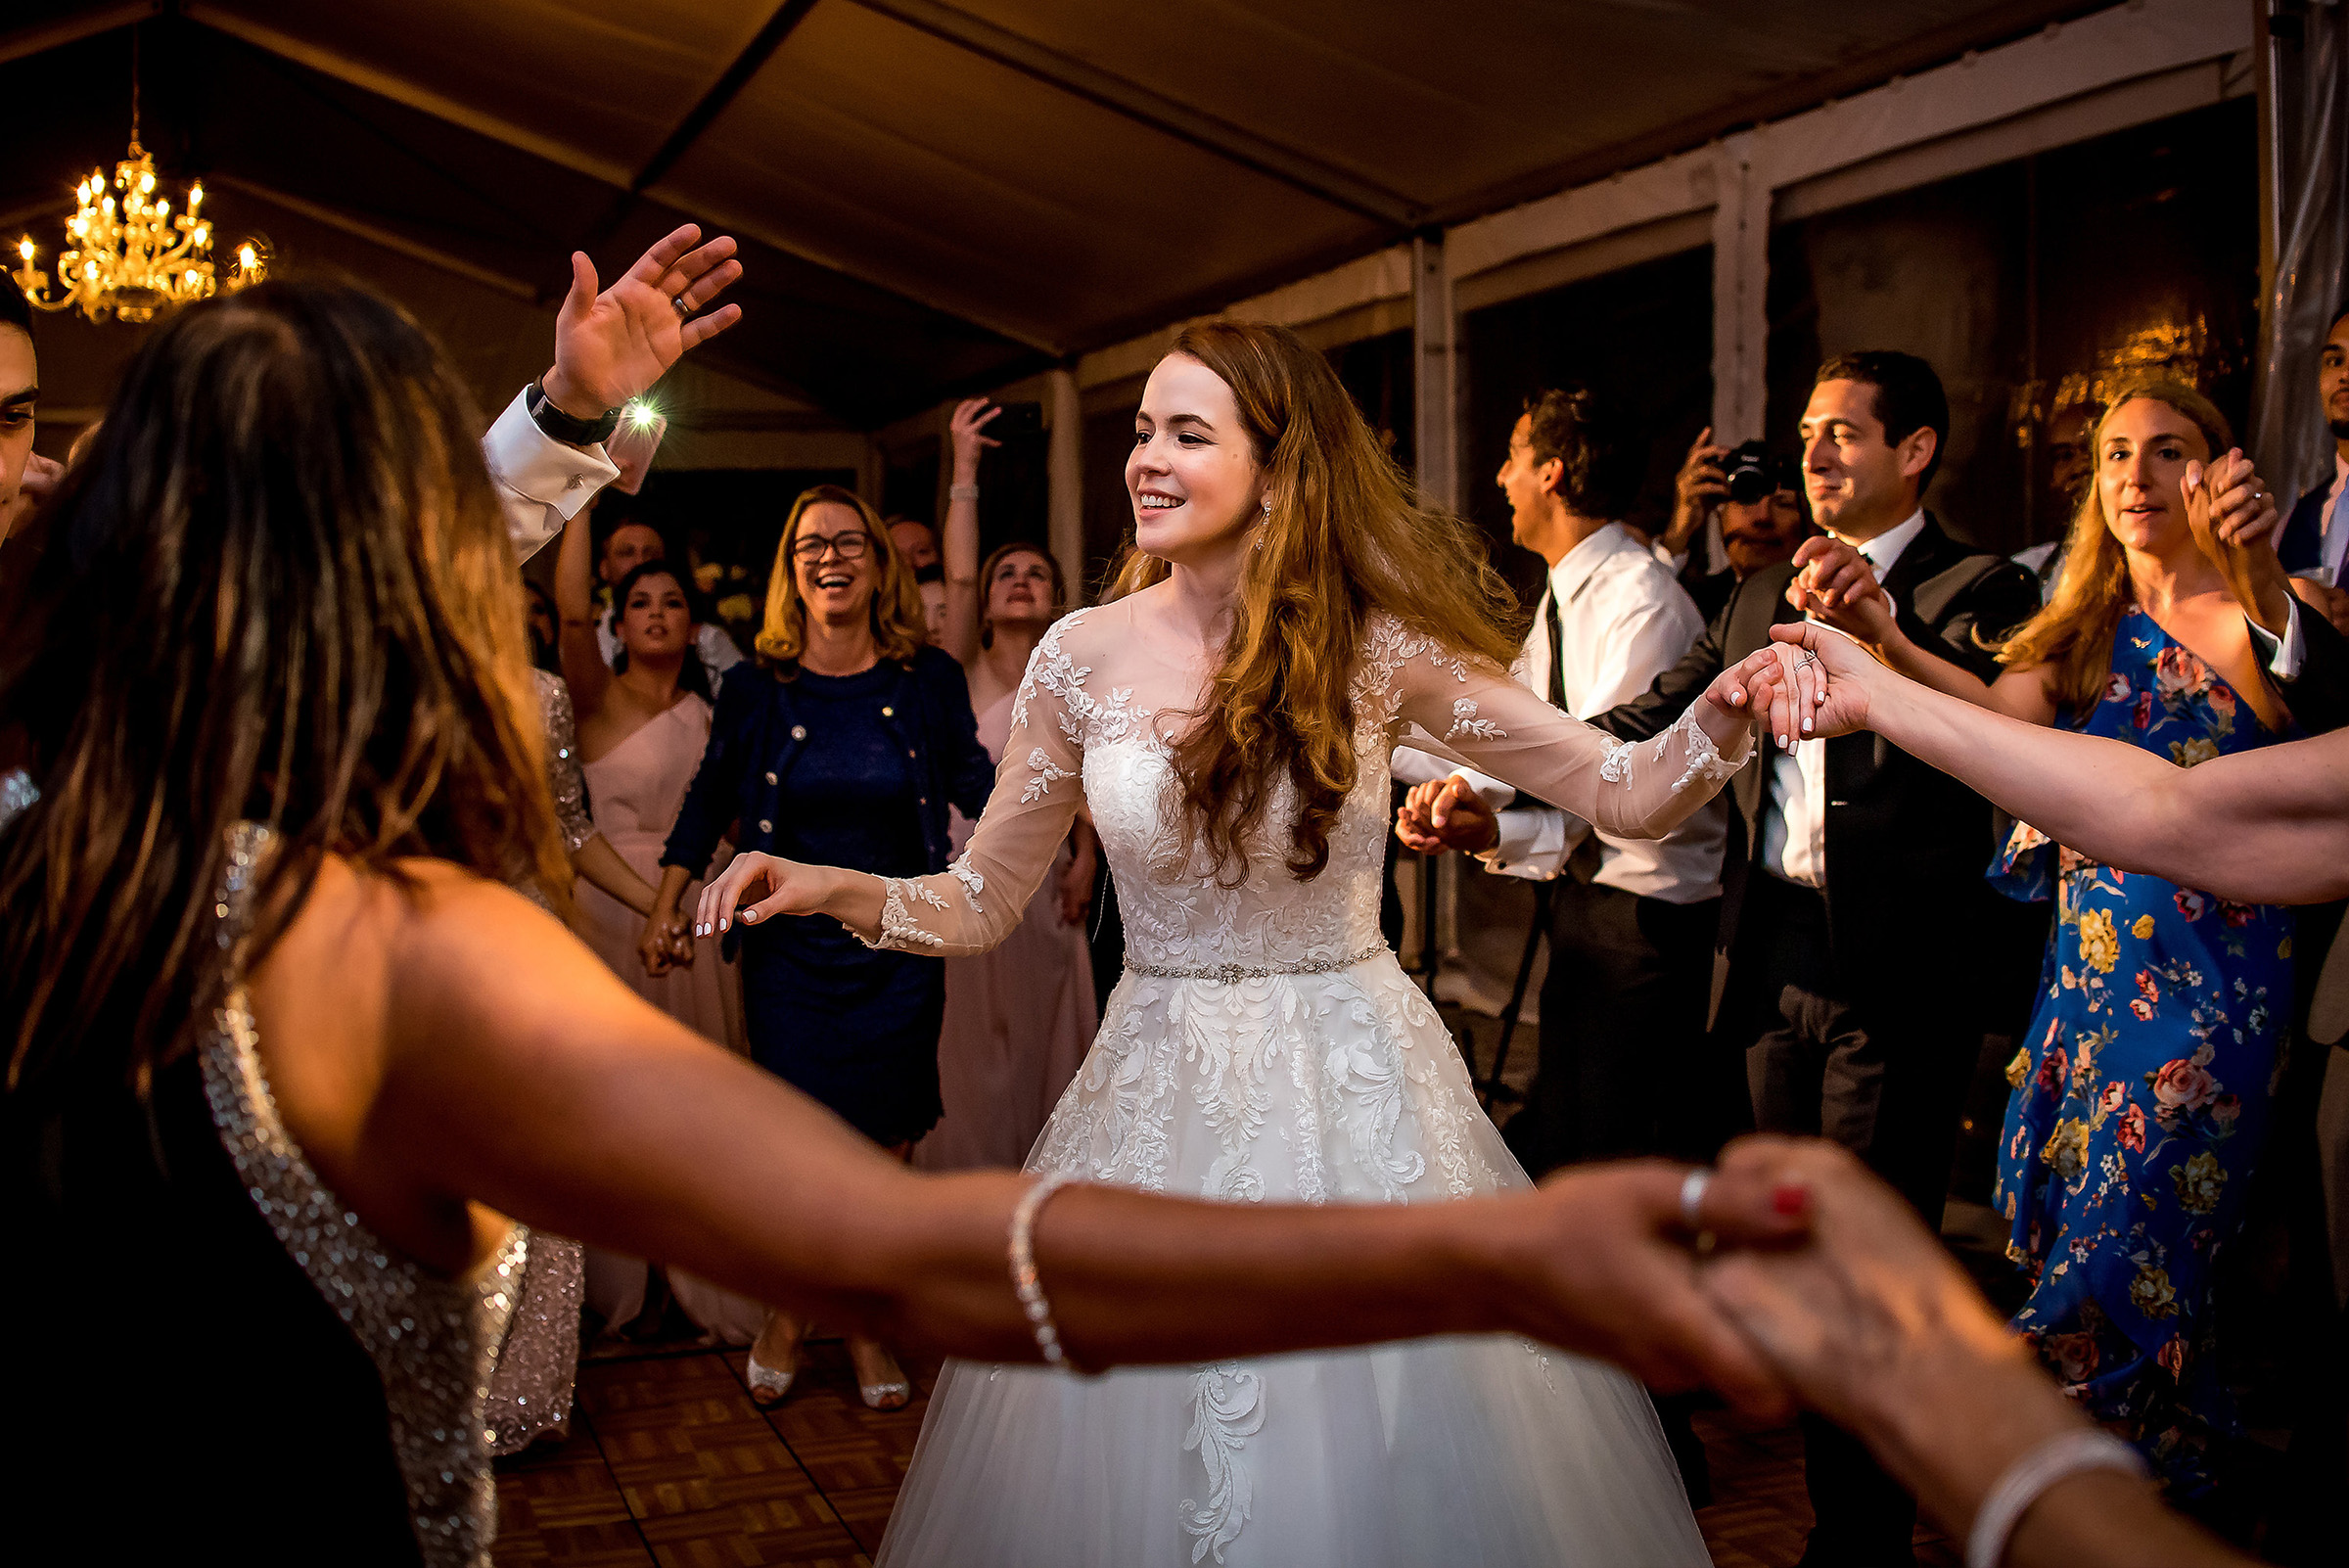 Bride leads circle dance - photo by Gloria Ruth Photography